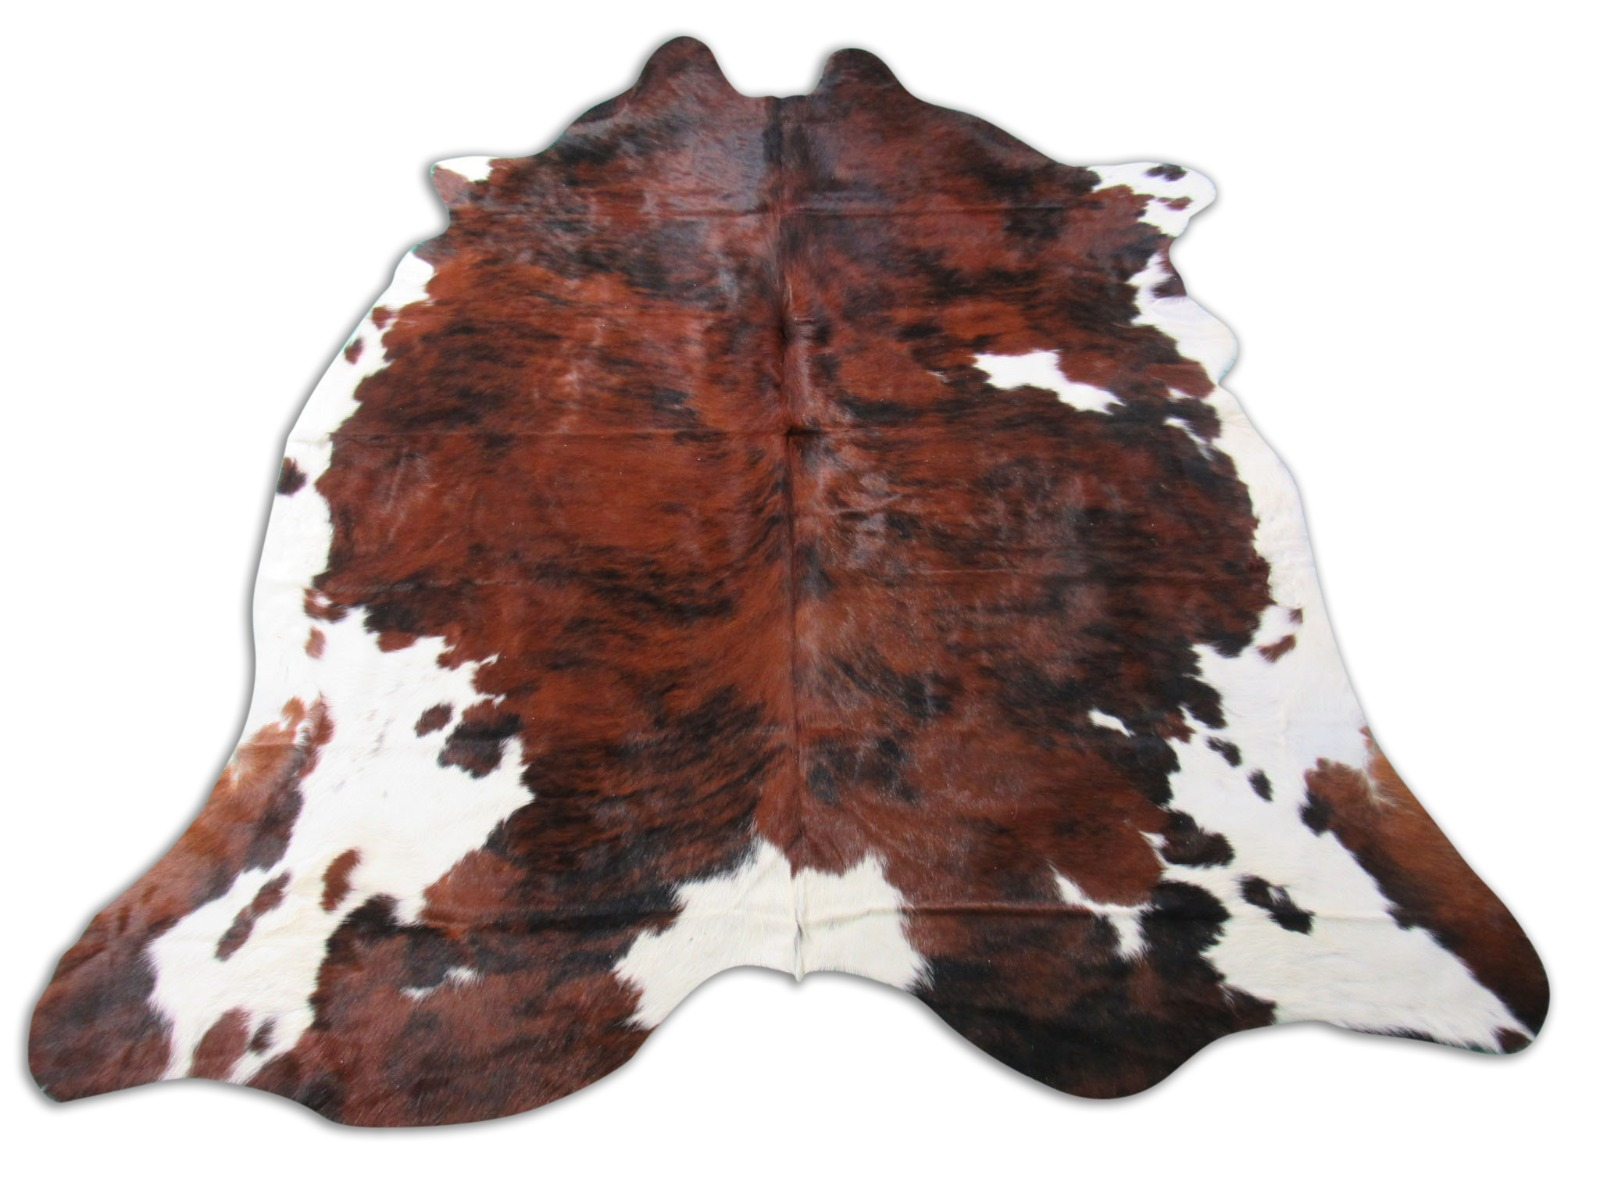 A-1304 Tricolor Speckled Cowhide Rug Size: 7 1/4' X 7'